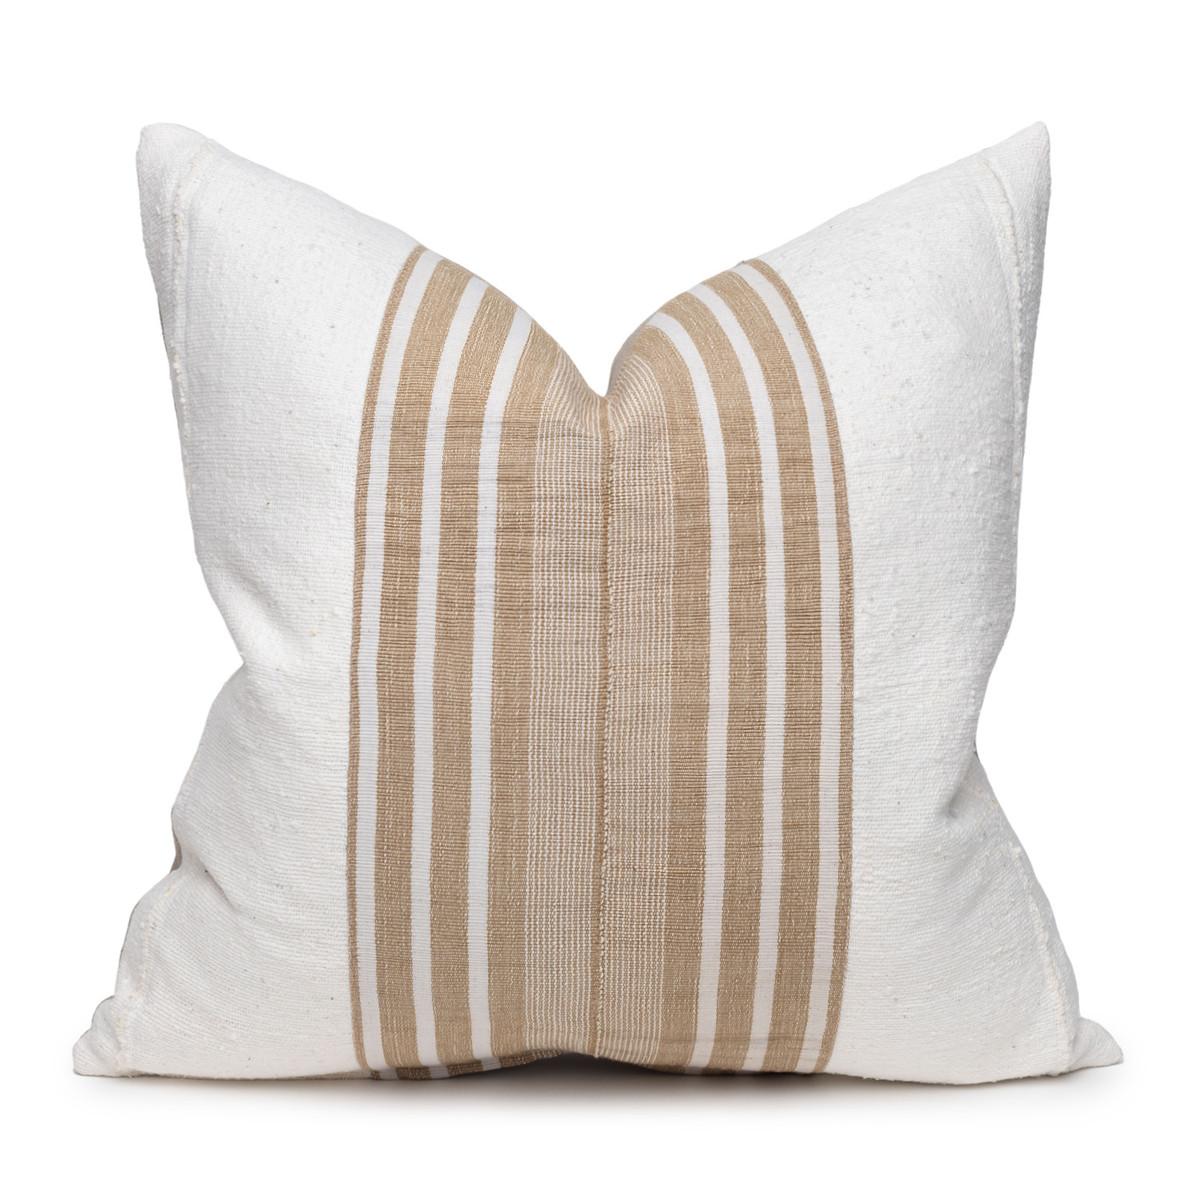 Field Pillow - Aso Oke Natural Linen Pillow with White Mud Cloth- 22 - Front View